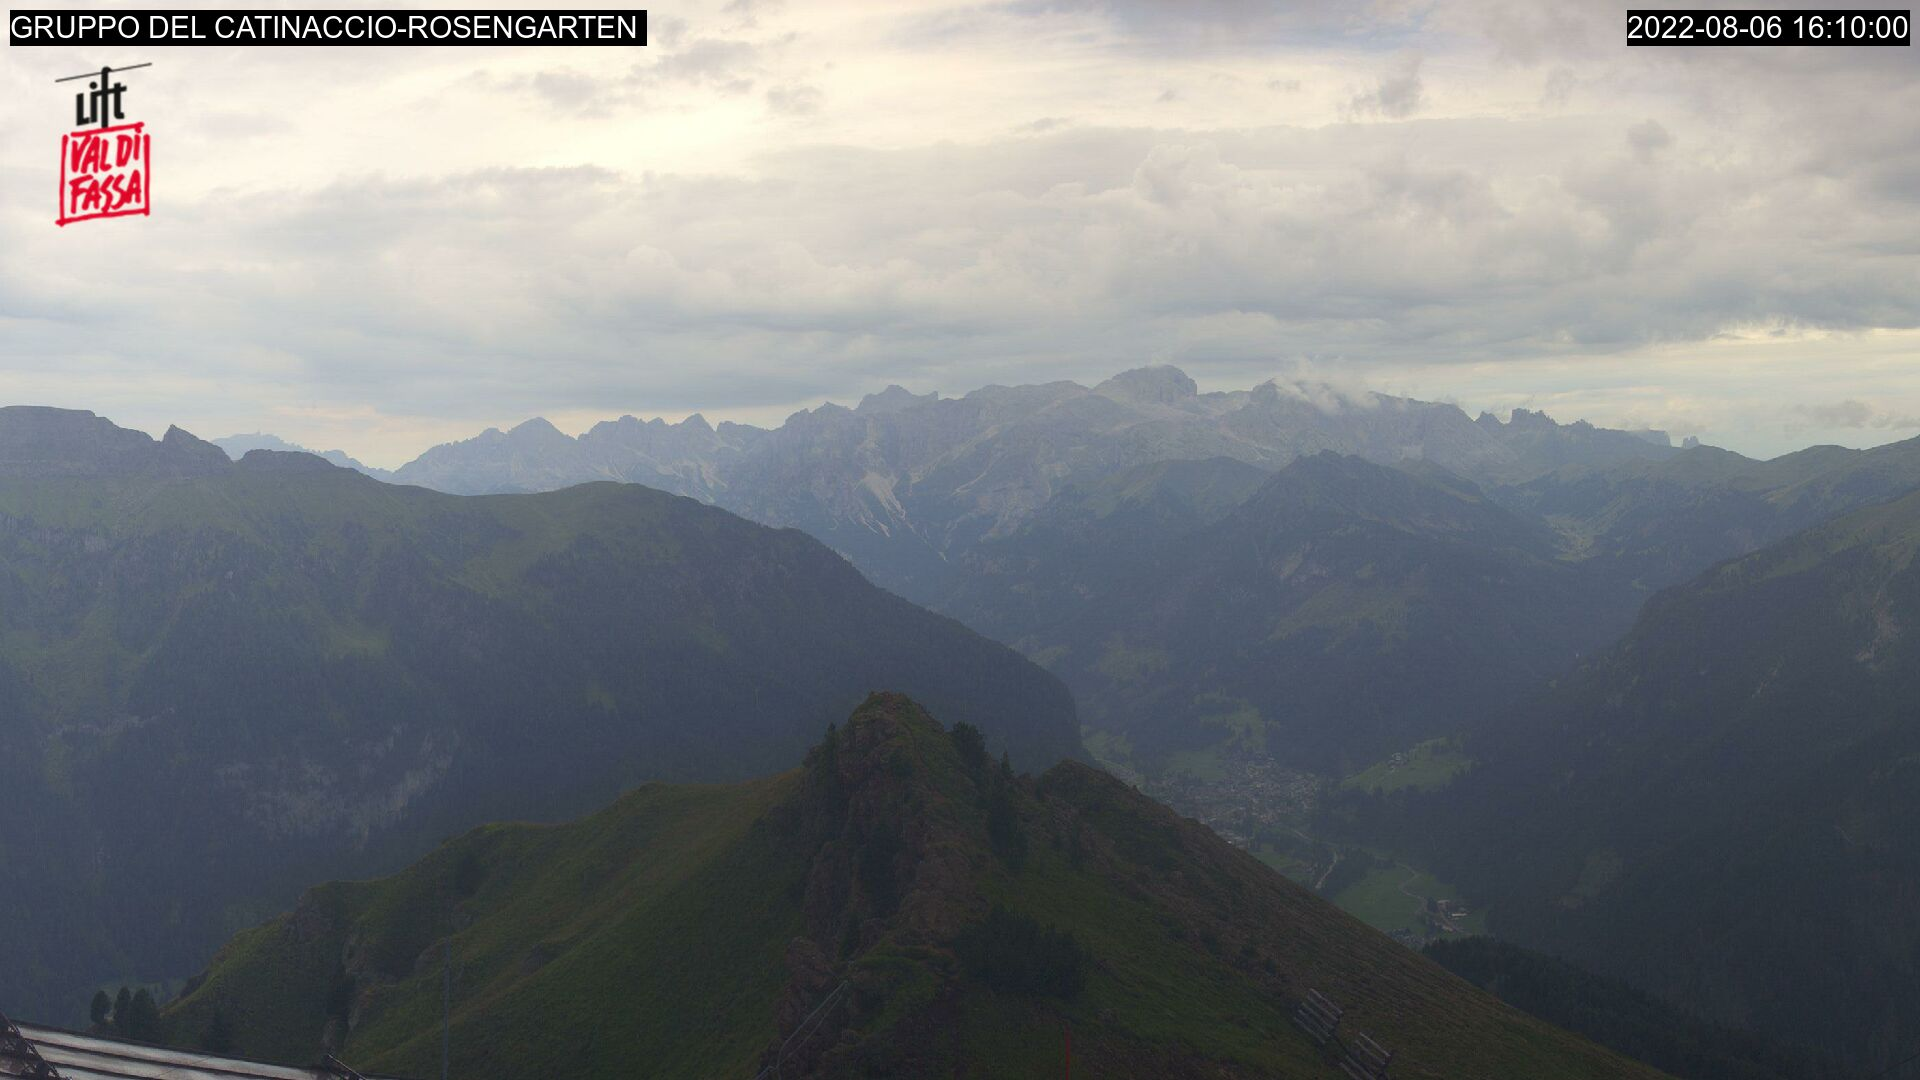 Webcam Belvedere - Col Rodella - Catinaccio - Altitude: 2,376 metresArea: Col dei Rossi Panoramic viewpoint: static webcam. View from the top station of the